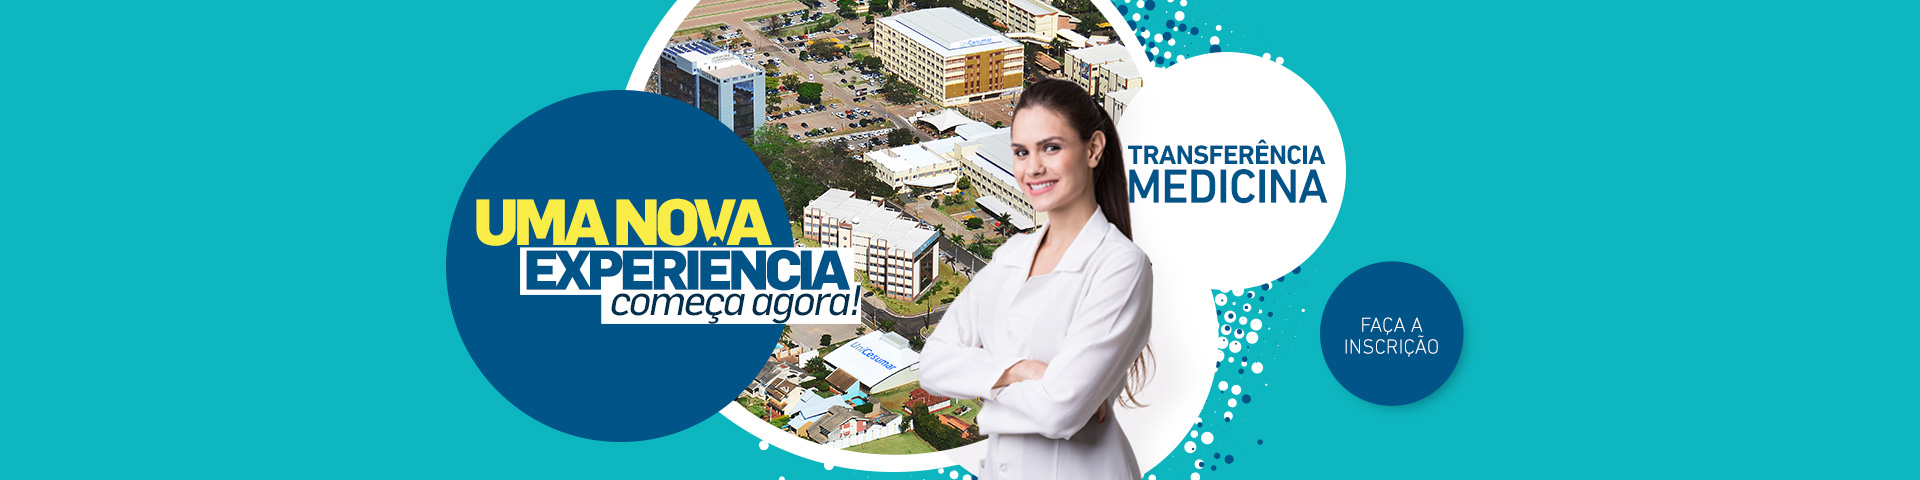 2737_banner_home_transferencia_med_1920x480px